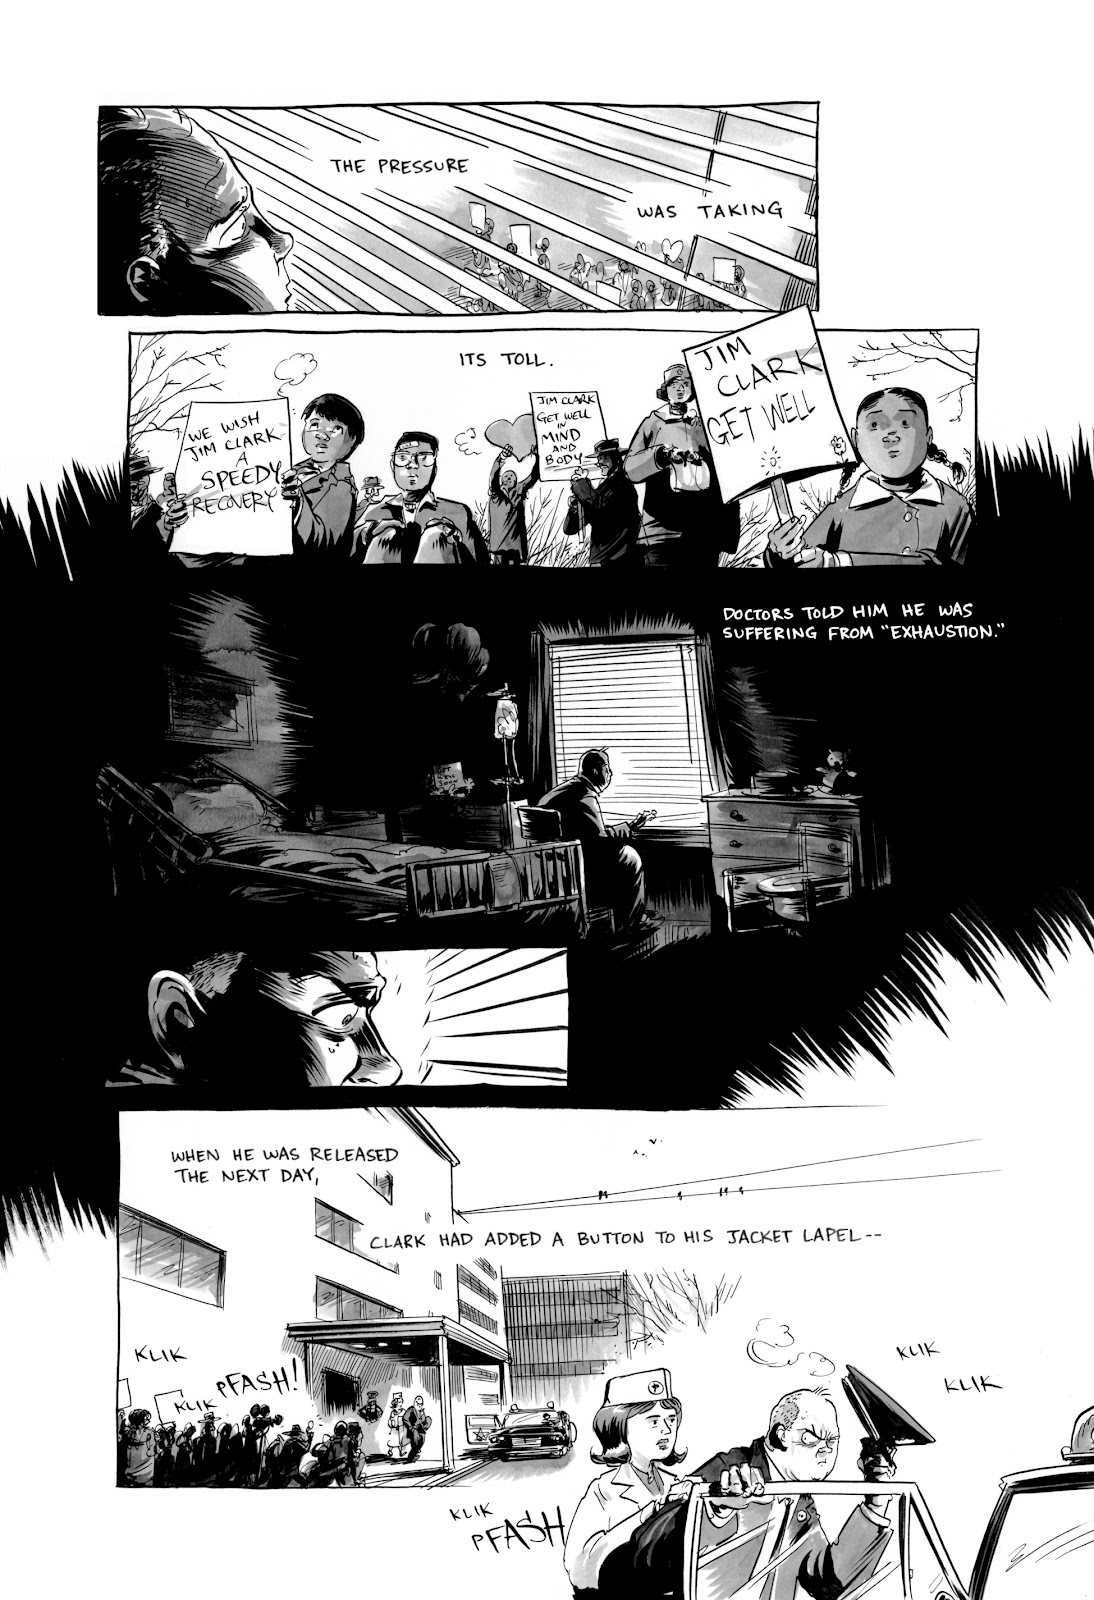 March 3 Page 165